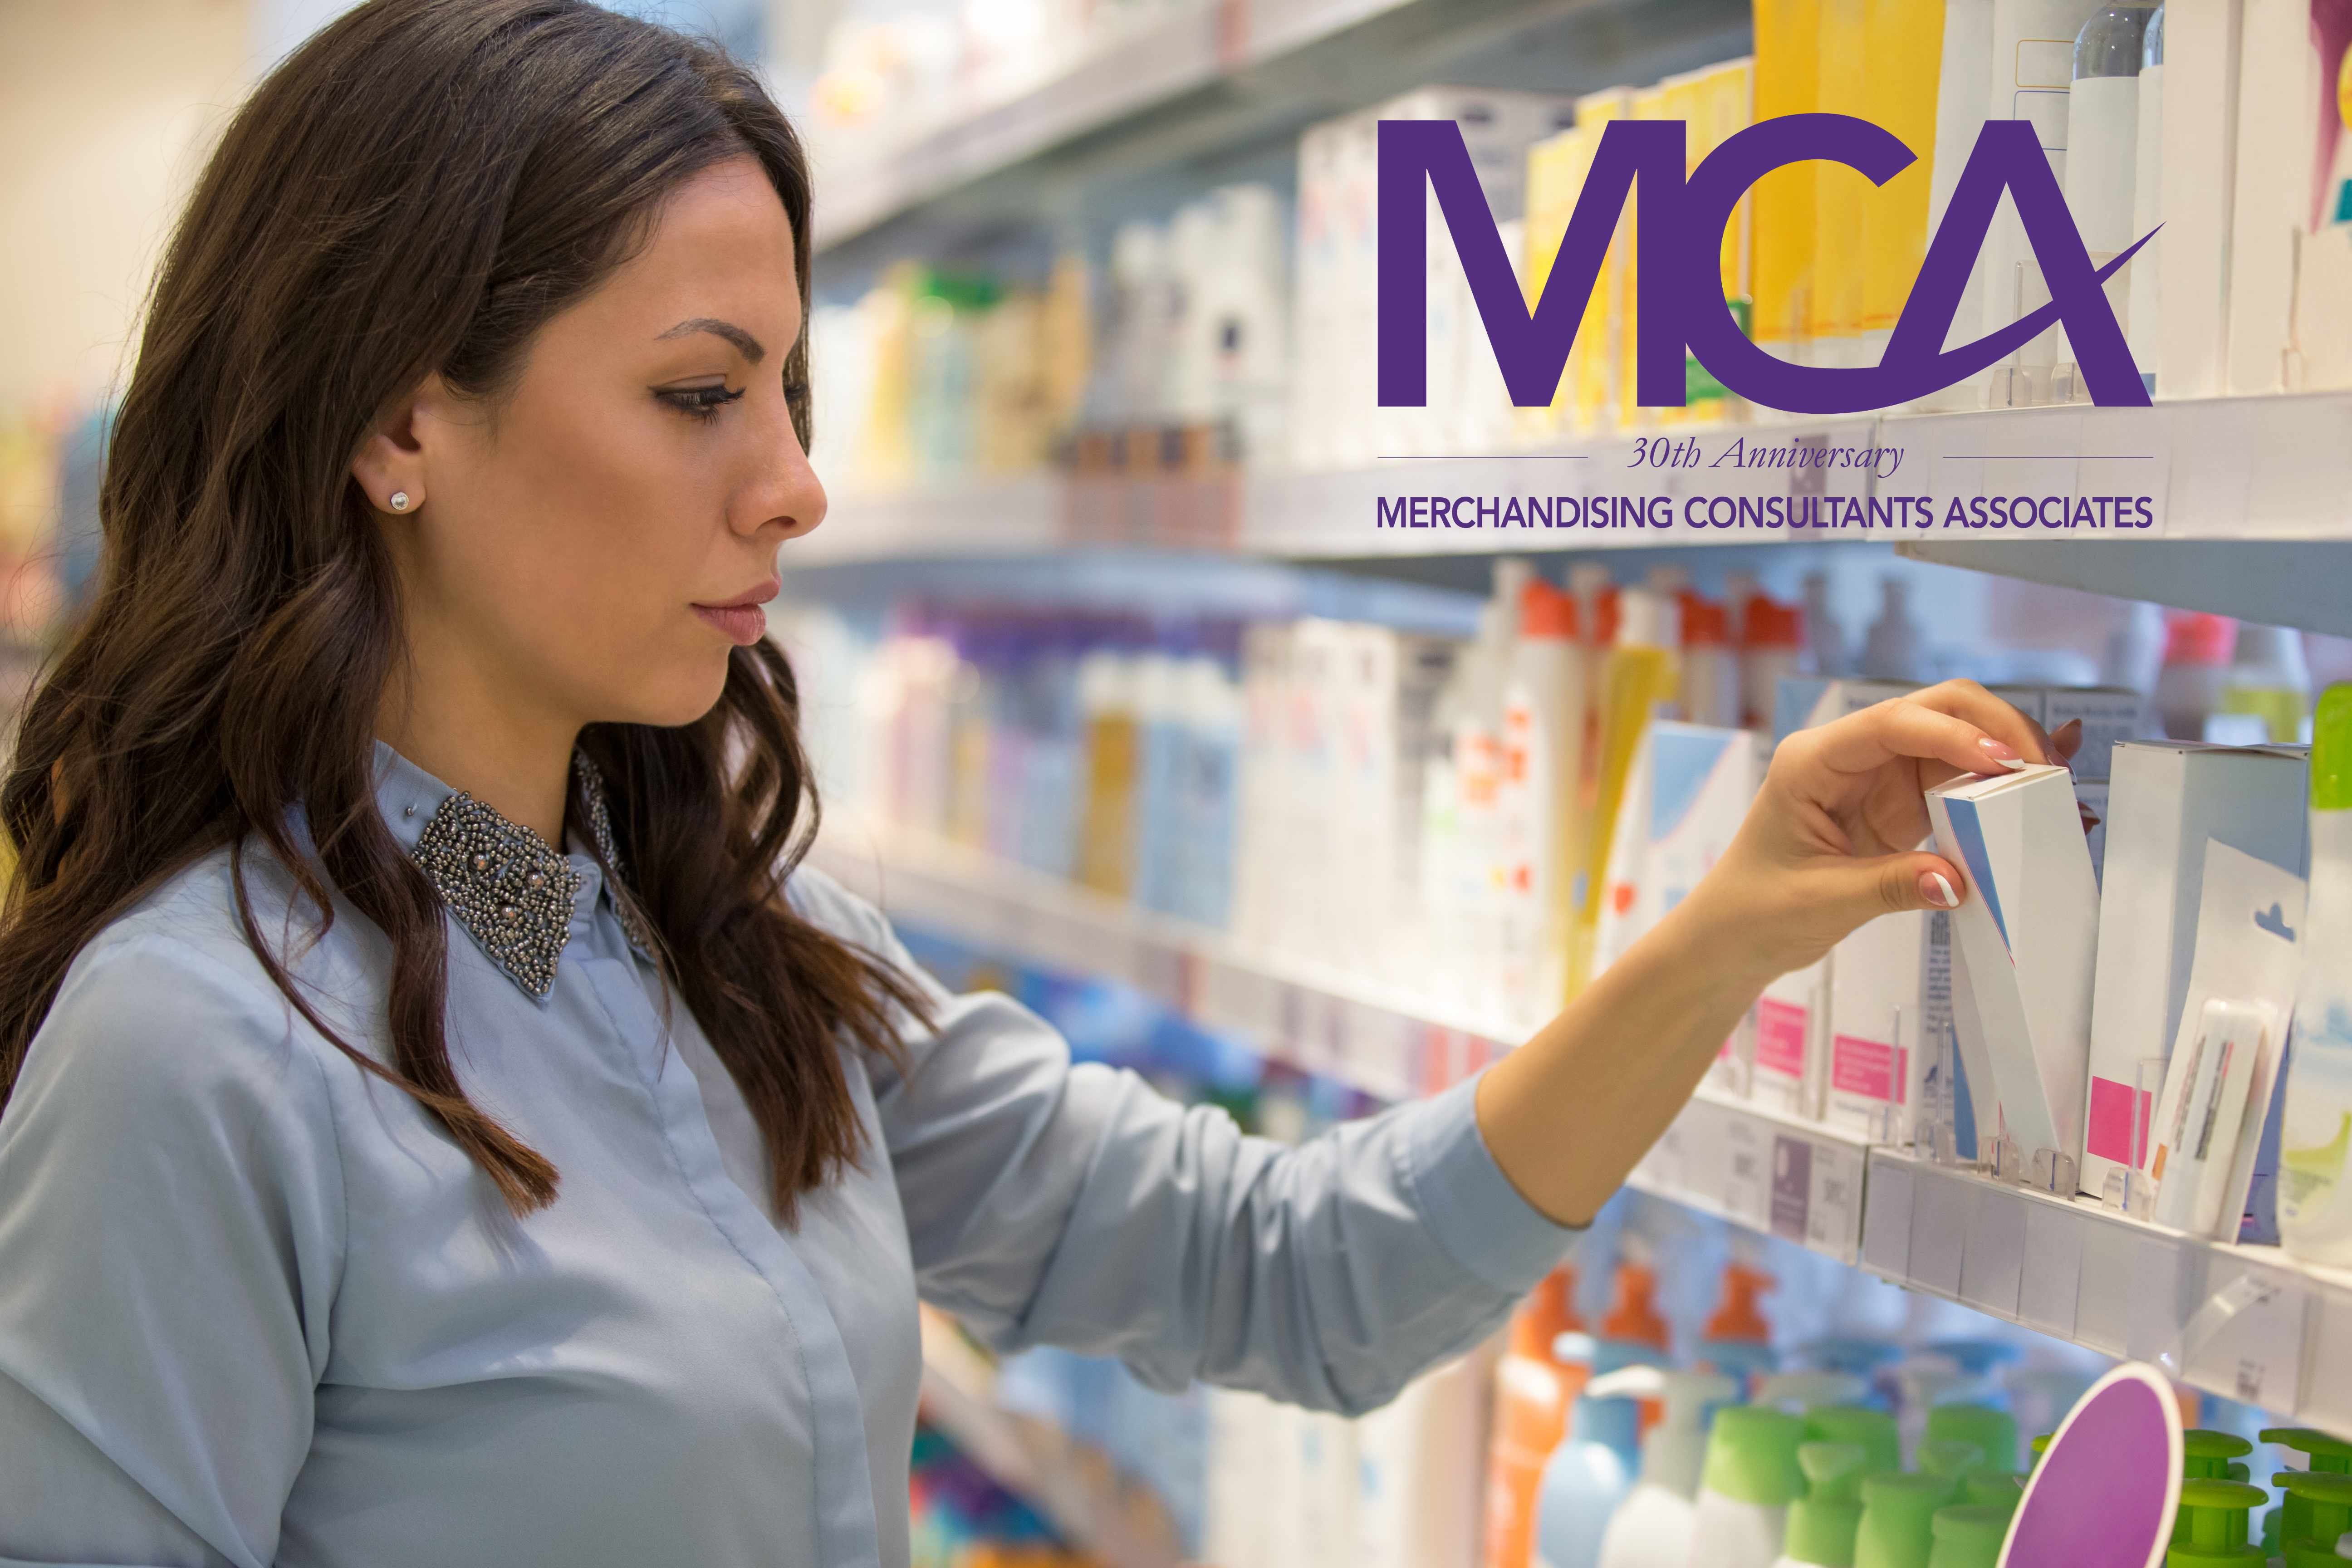 MCA (Merchandising Consultants Associates) Forms Strategic Partnership with StayinFront